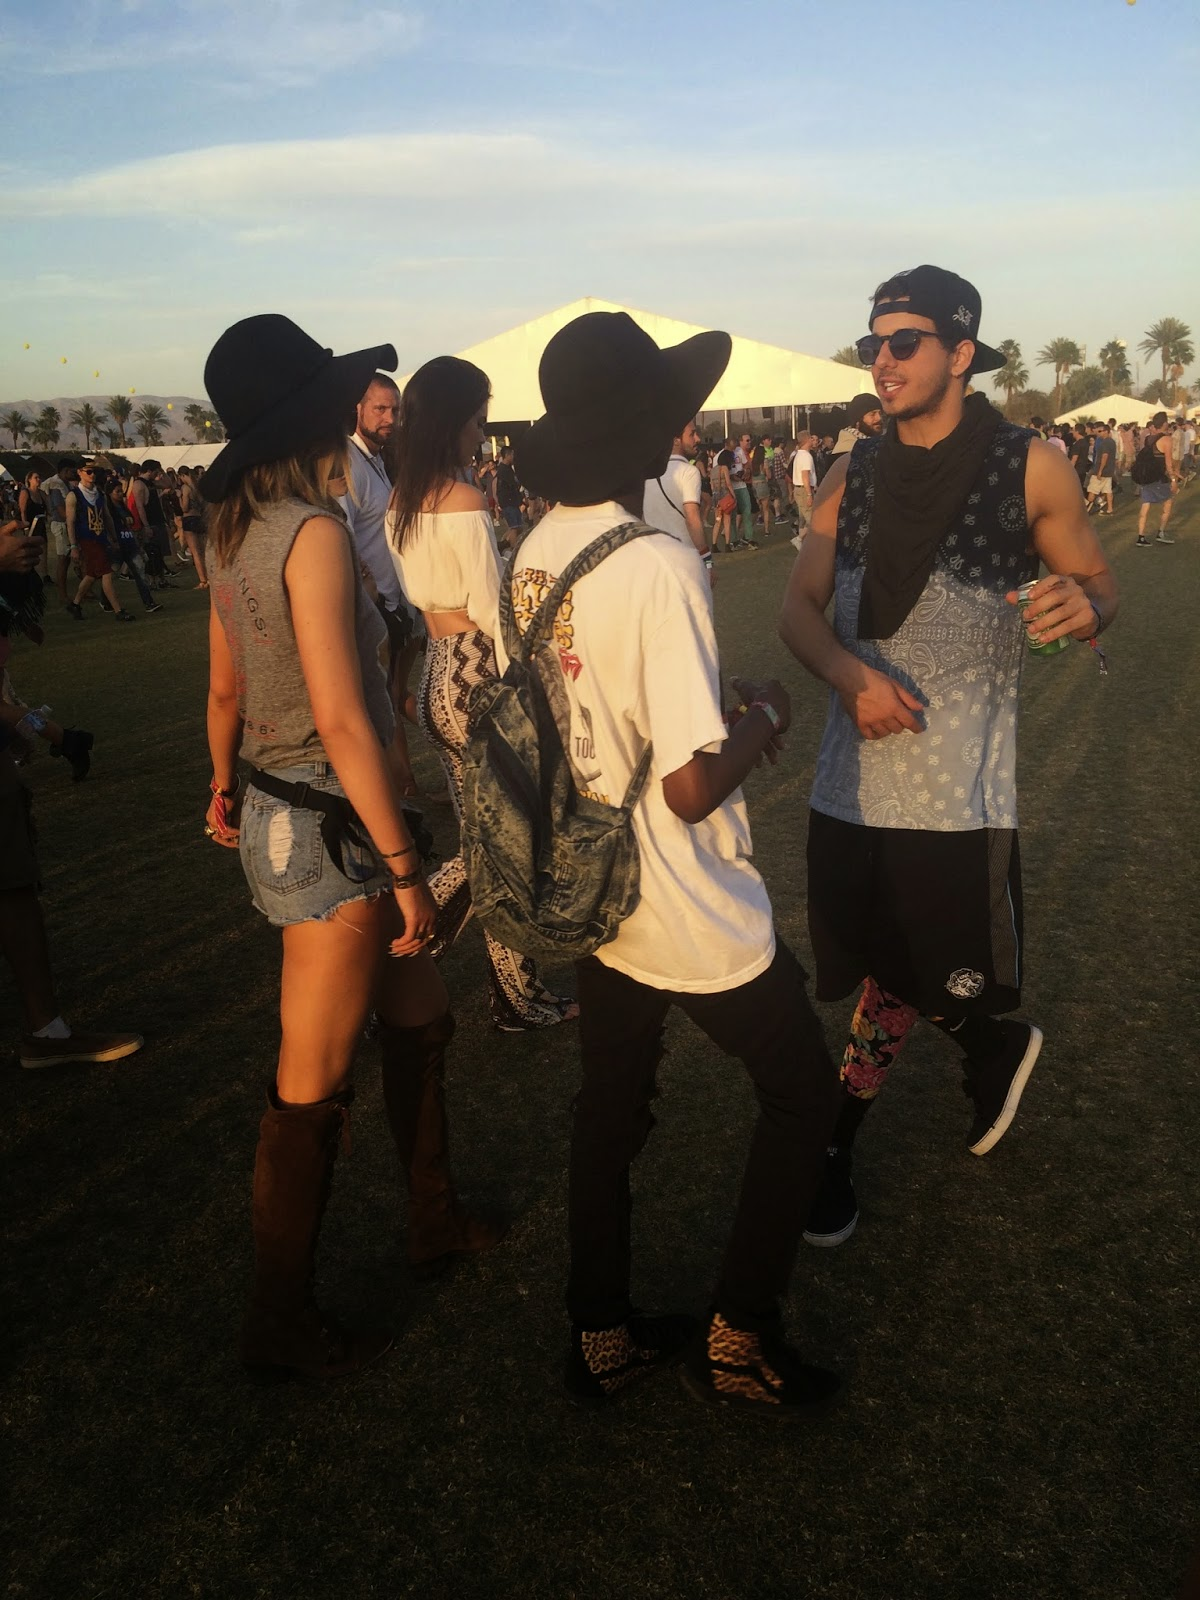 Kylie Jenner at Coachella in Palm Springs, California - Peace & Love: Coachella Outfits by popular Orlando fashion blogger Mash Elle